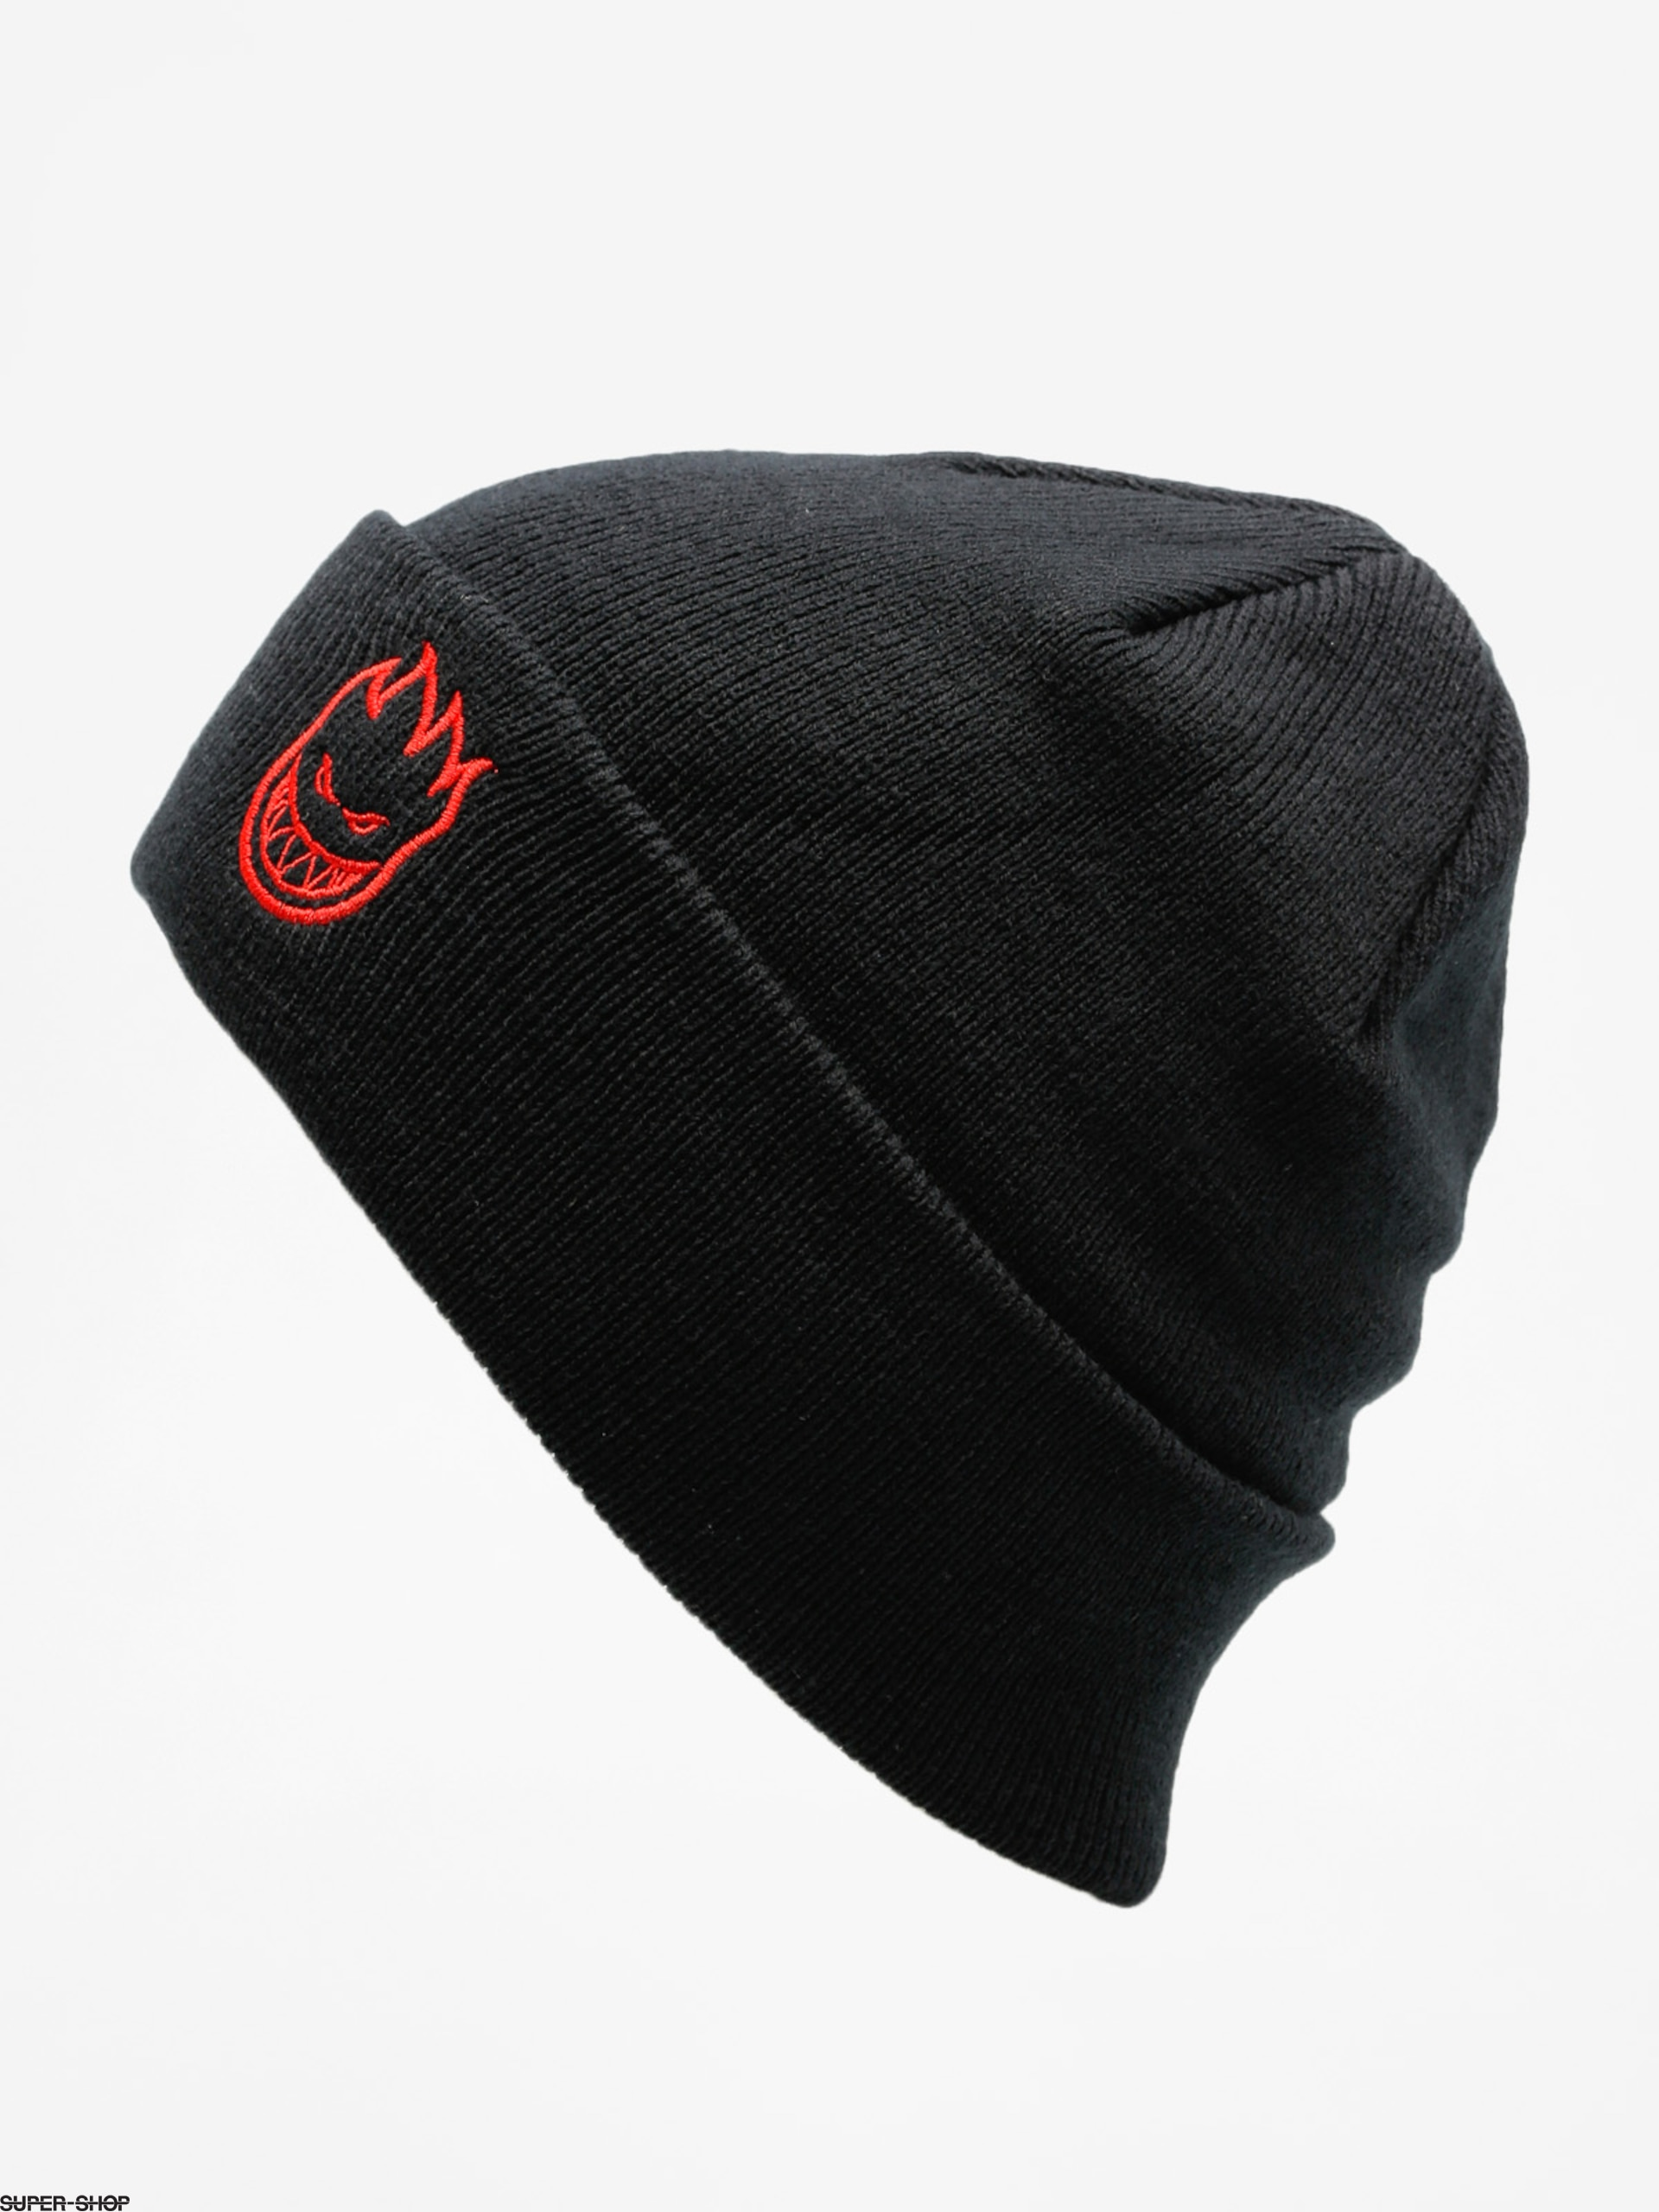 45672ad4f Spitfire Beanie Beanie Big Head Emb (black/red)